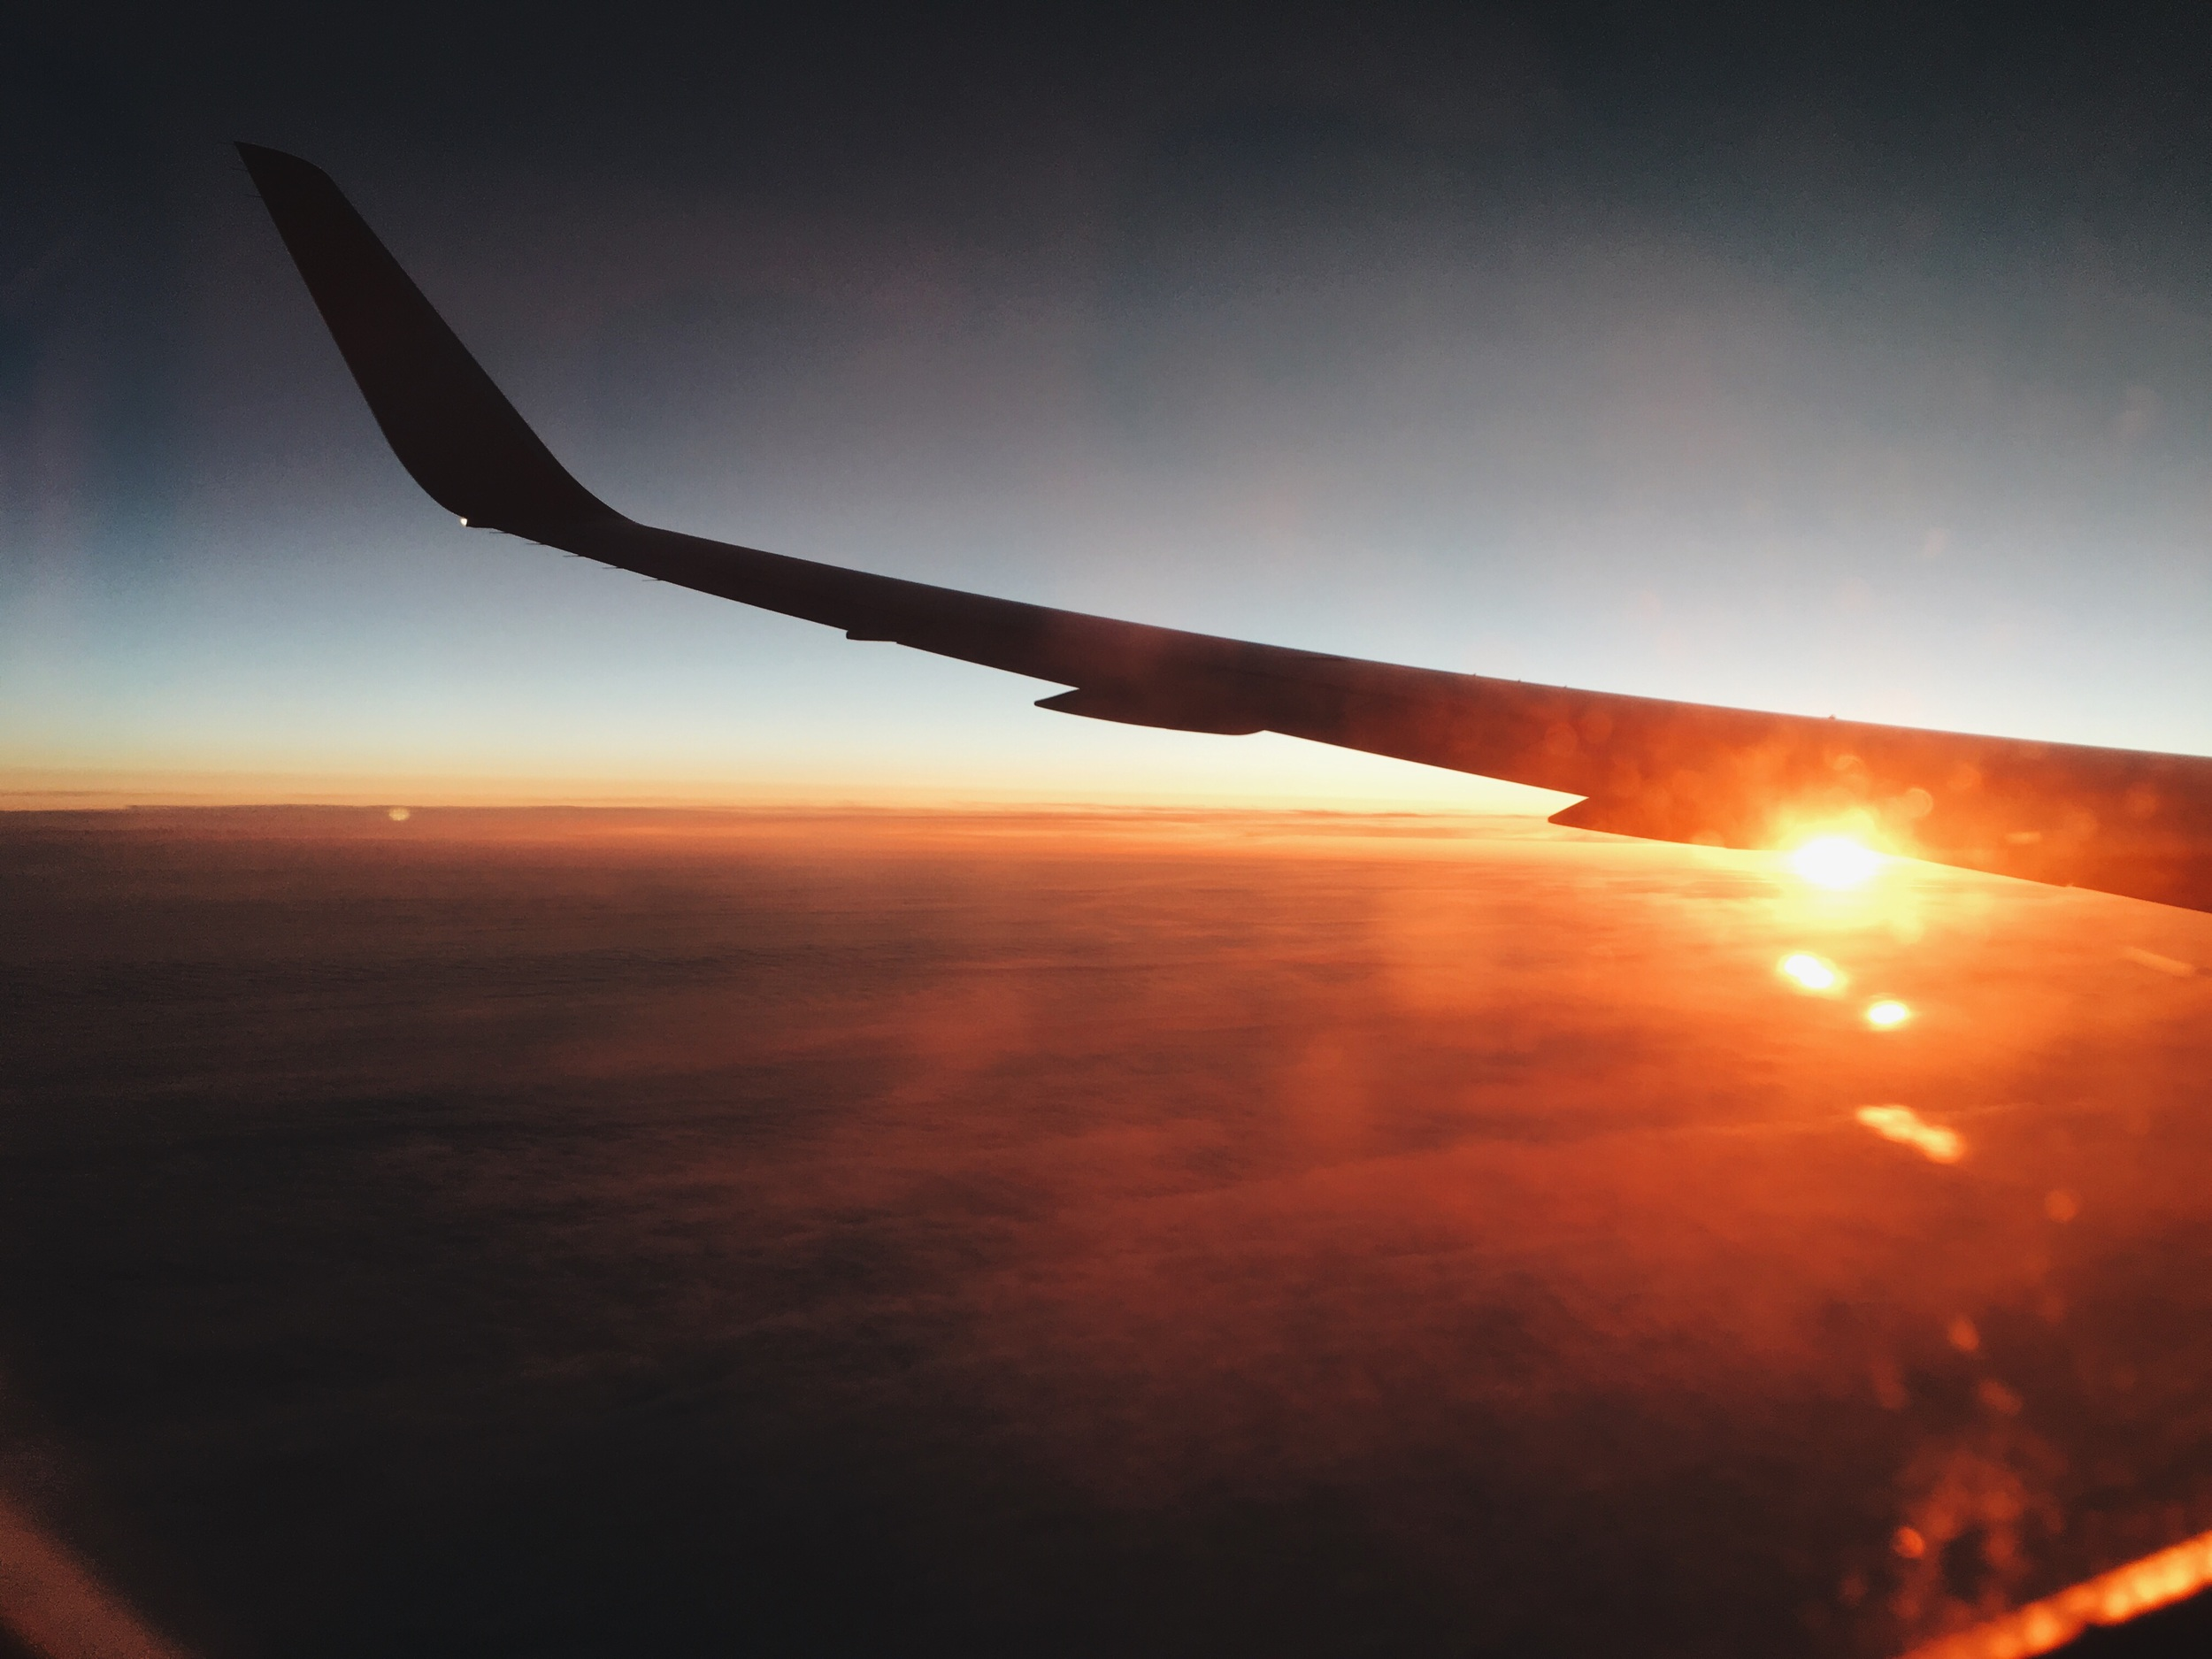 At least when the plane ride is sleepless you can grab shots of the sunrise.